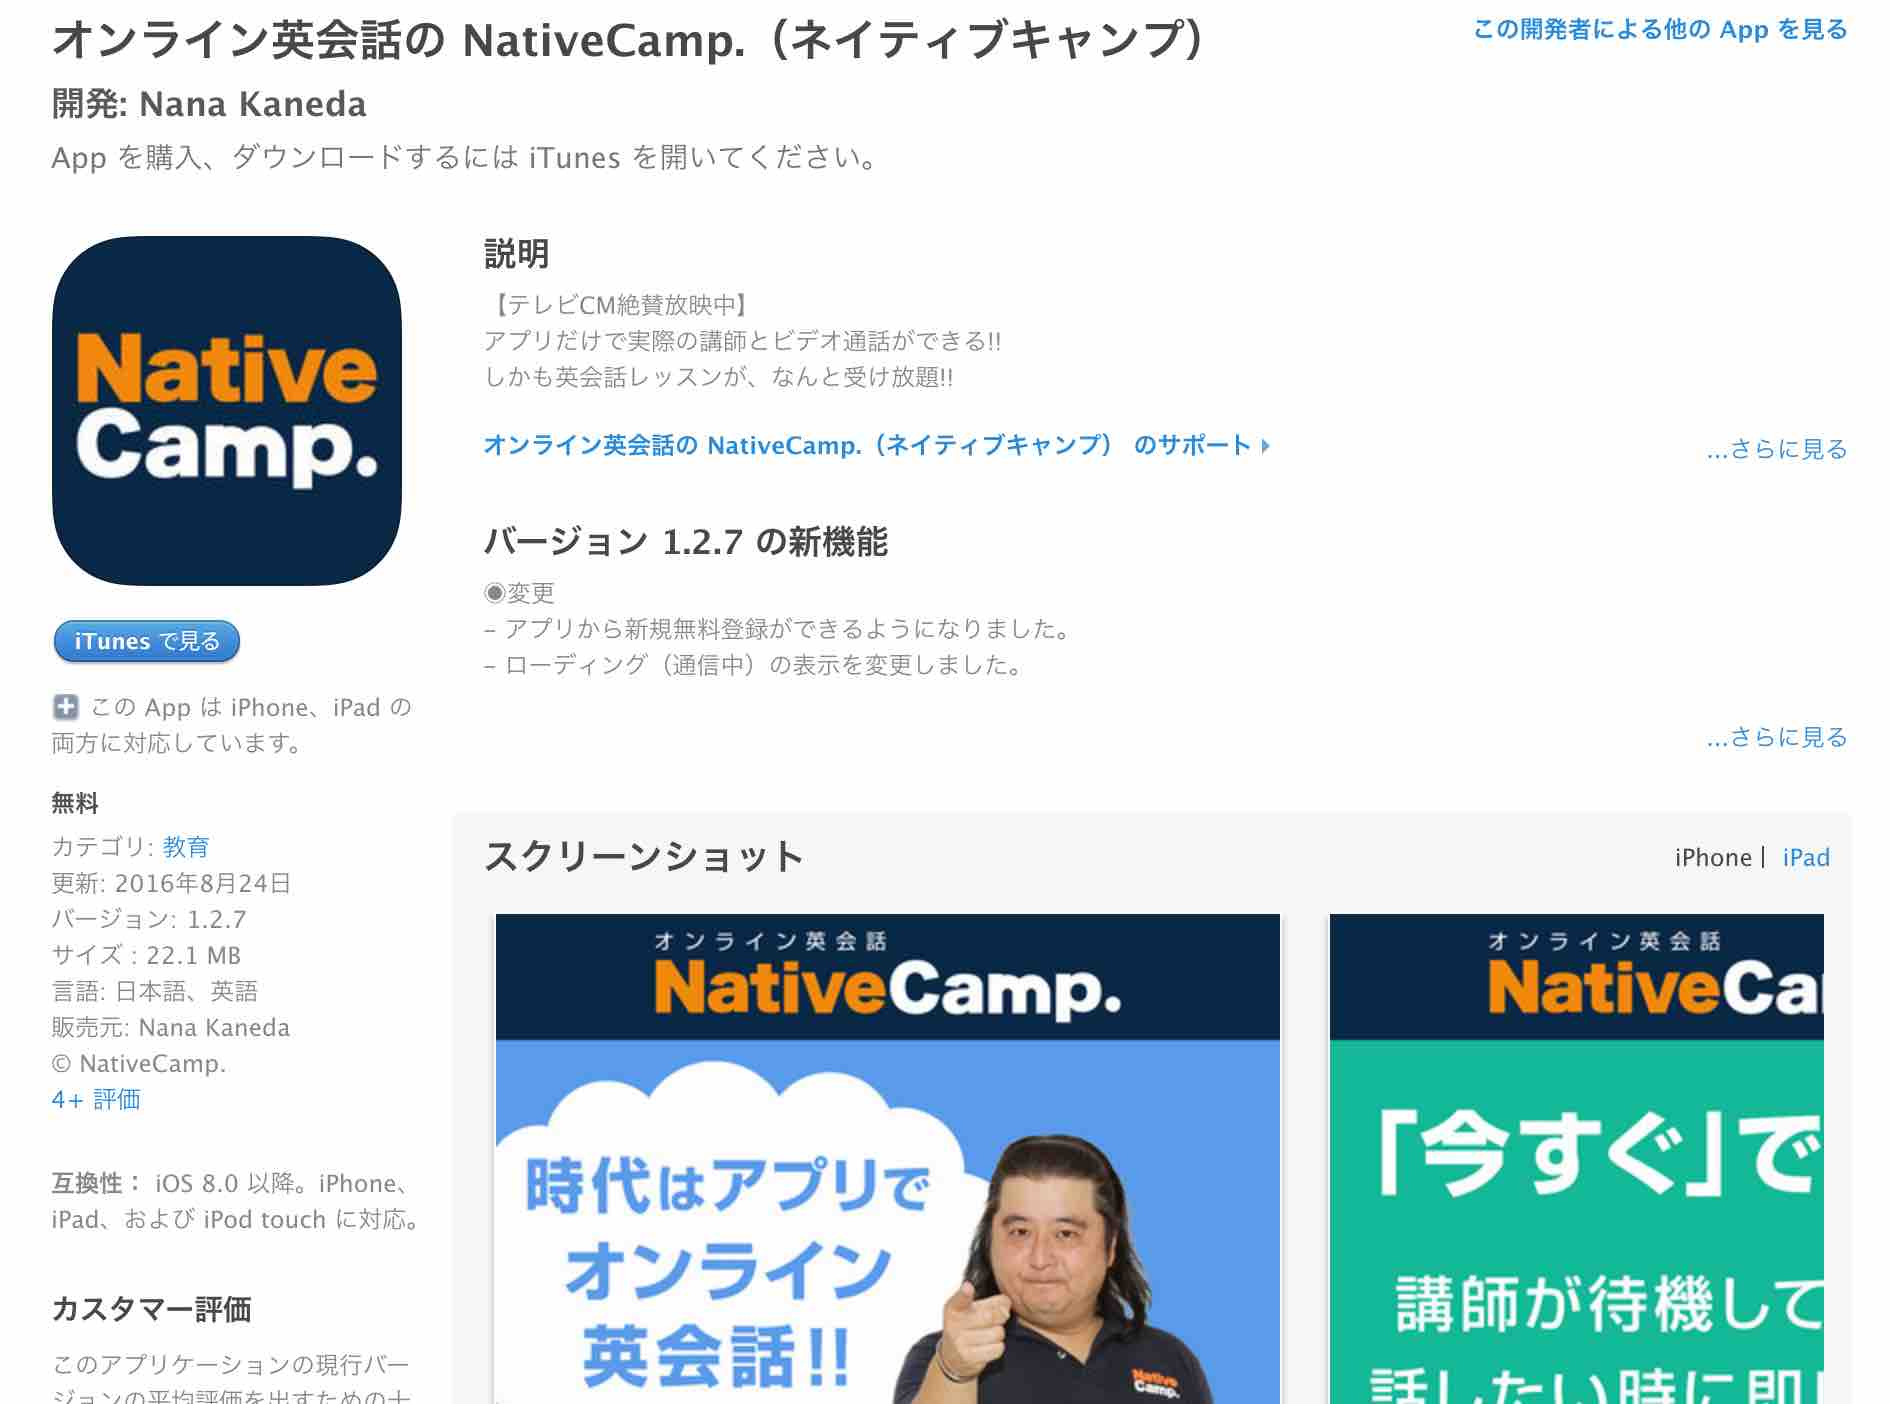 nativecamp_app